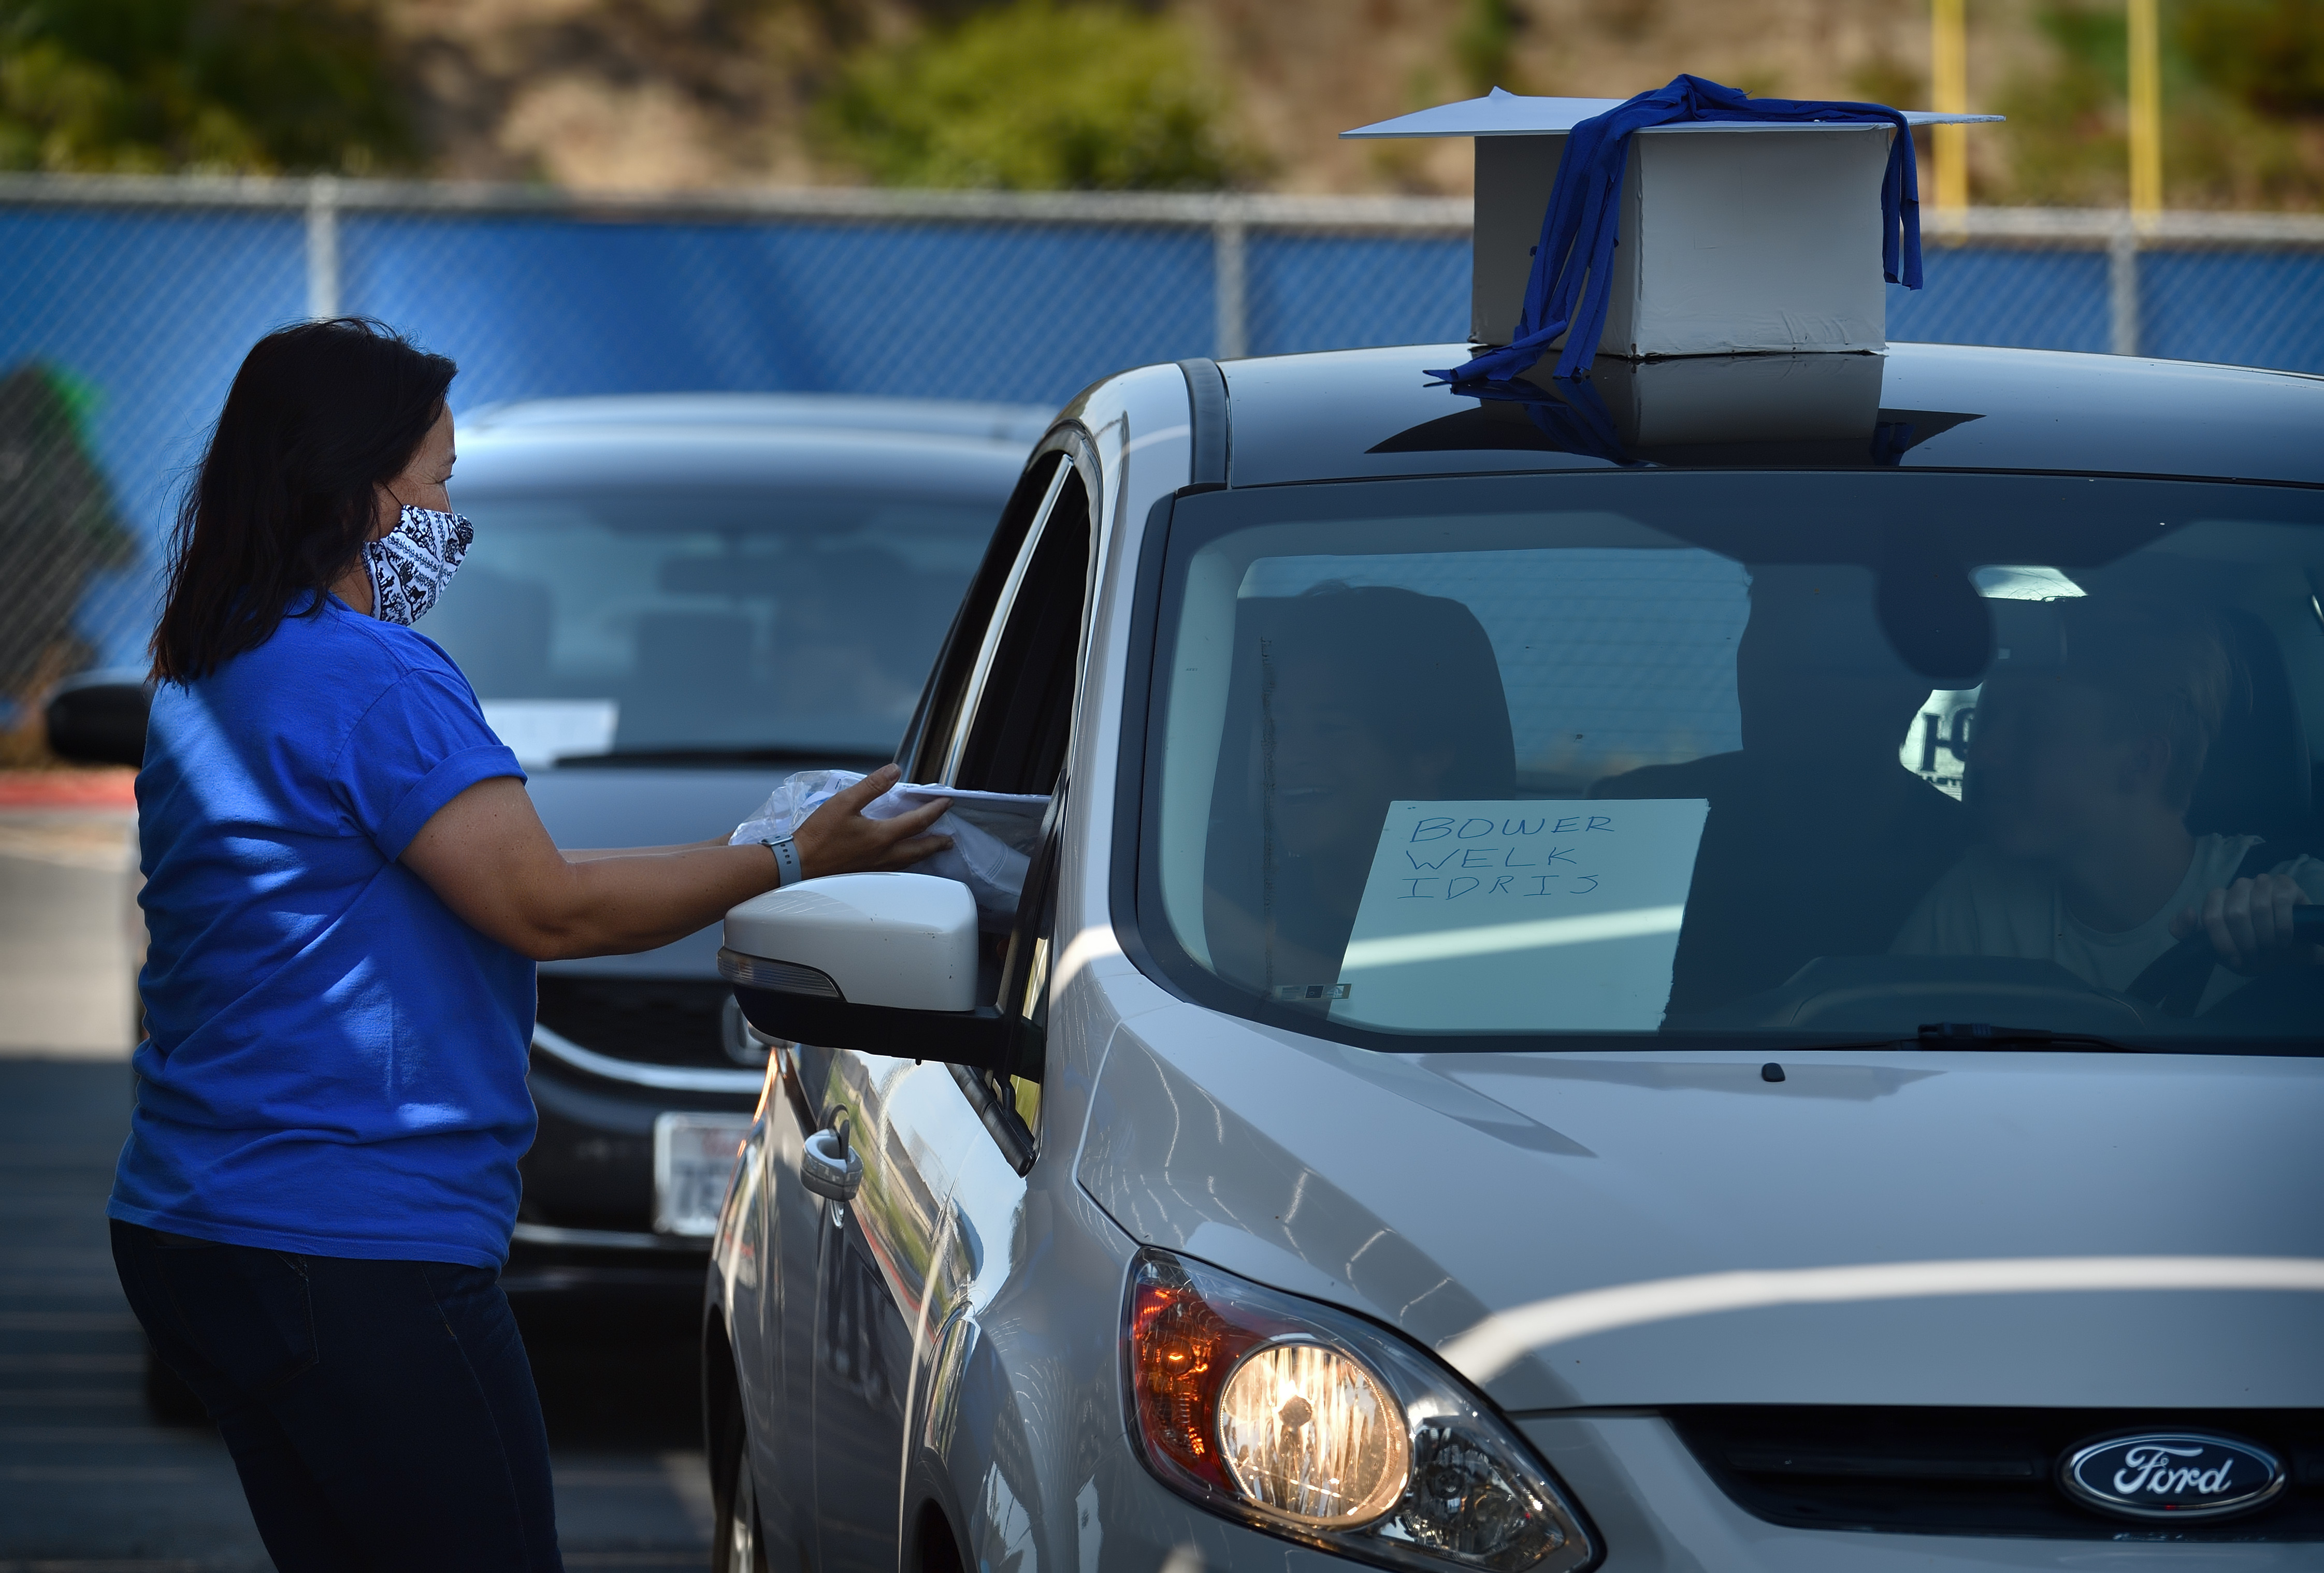 Dana Hills High School holds a small celebration as students pull up in cars to receive their cap and gown during the COVID-19 lockdown